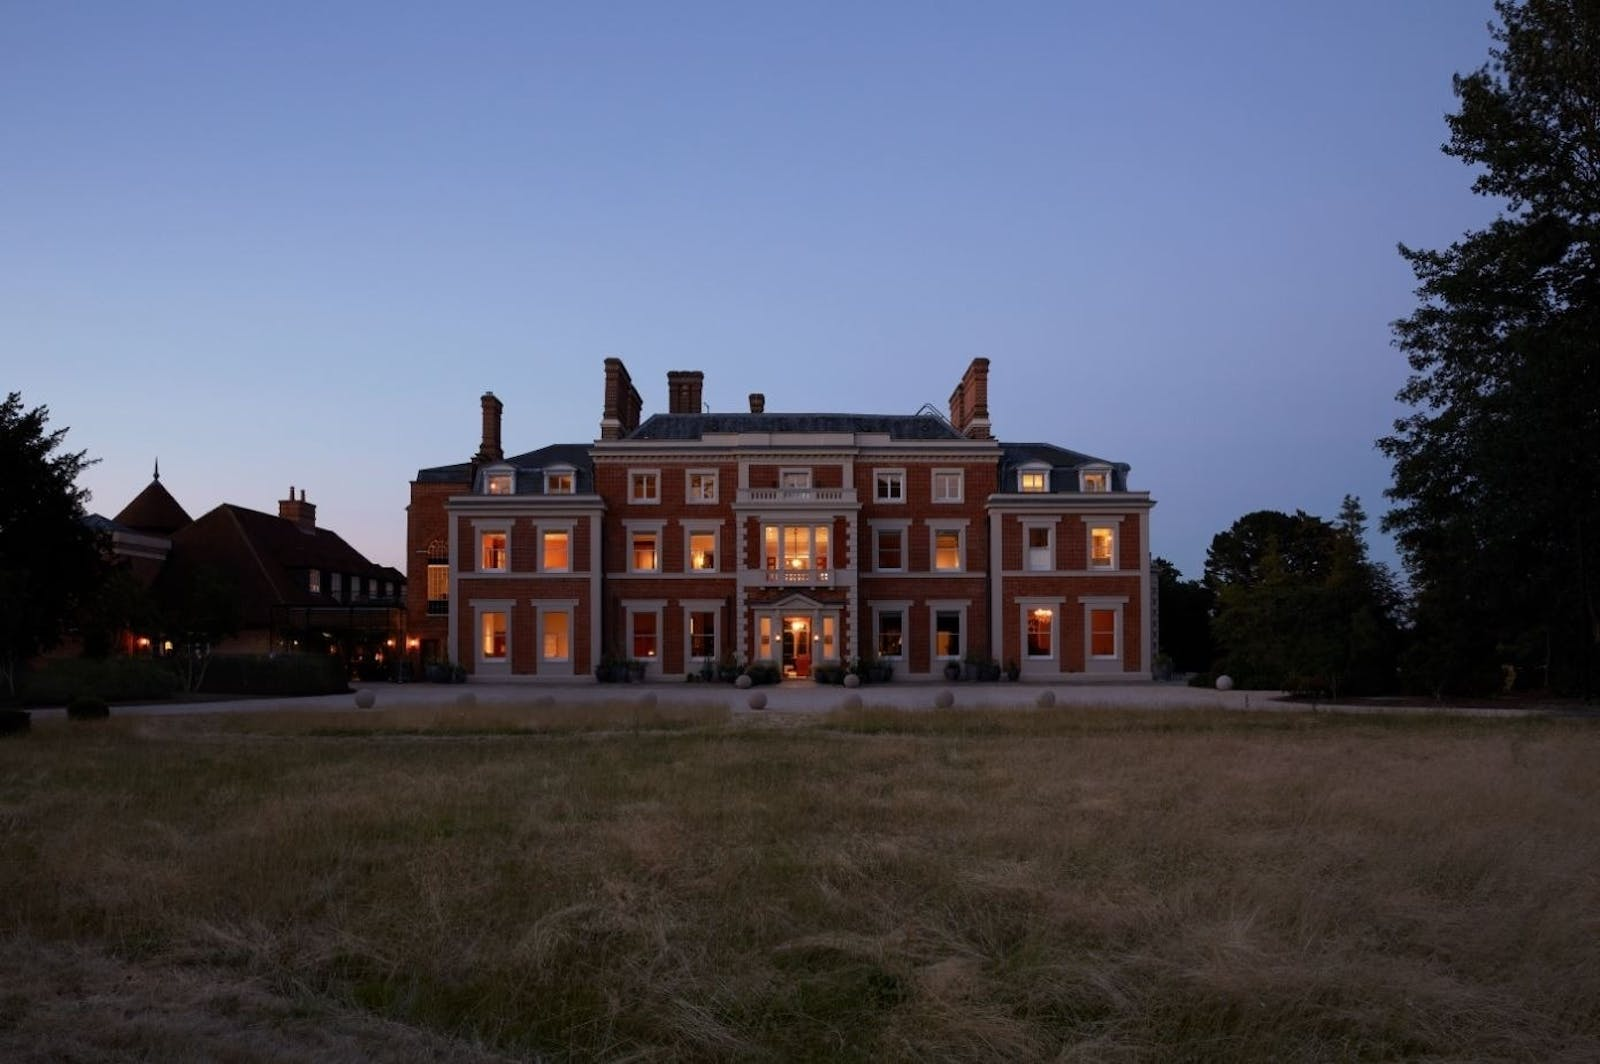 Heckfield Place, Hampshire at night